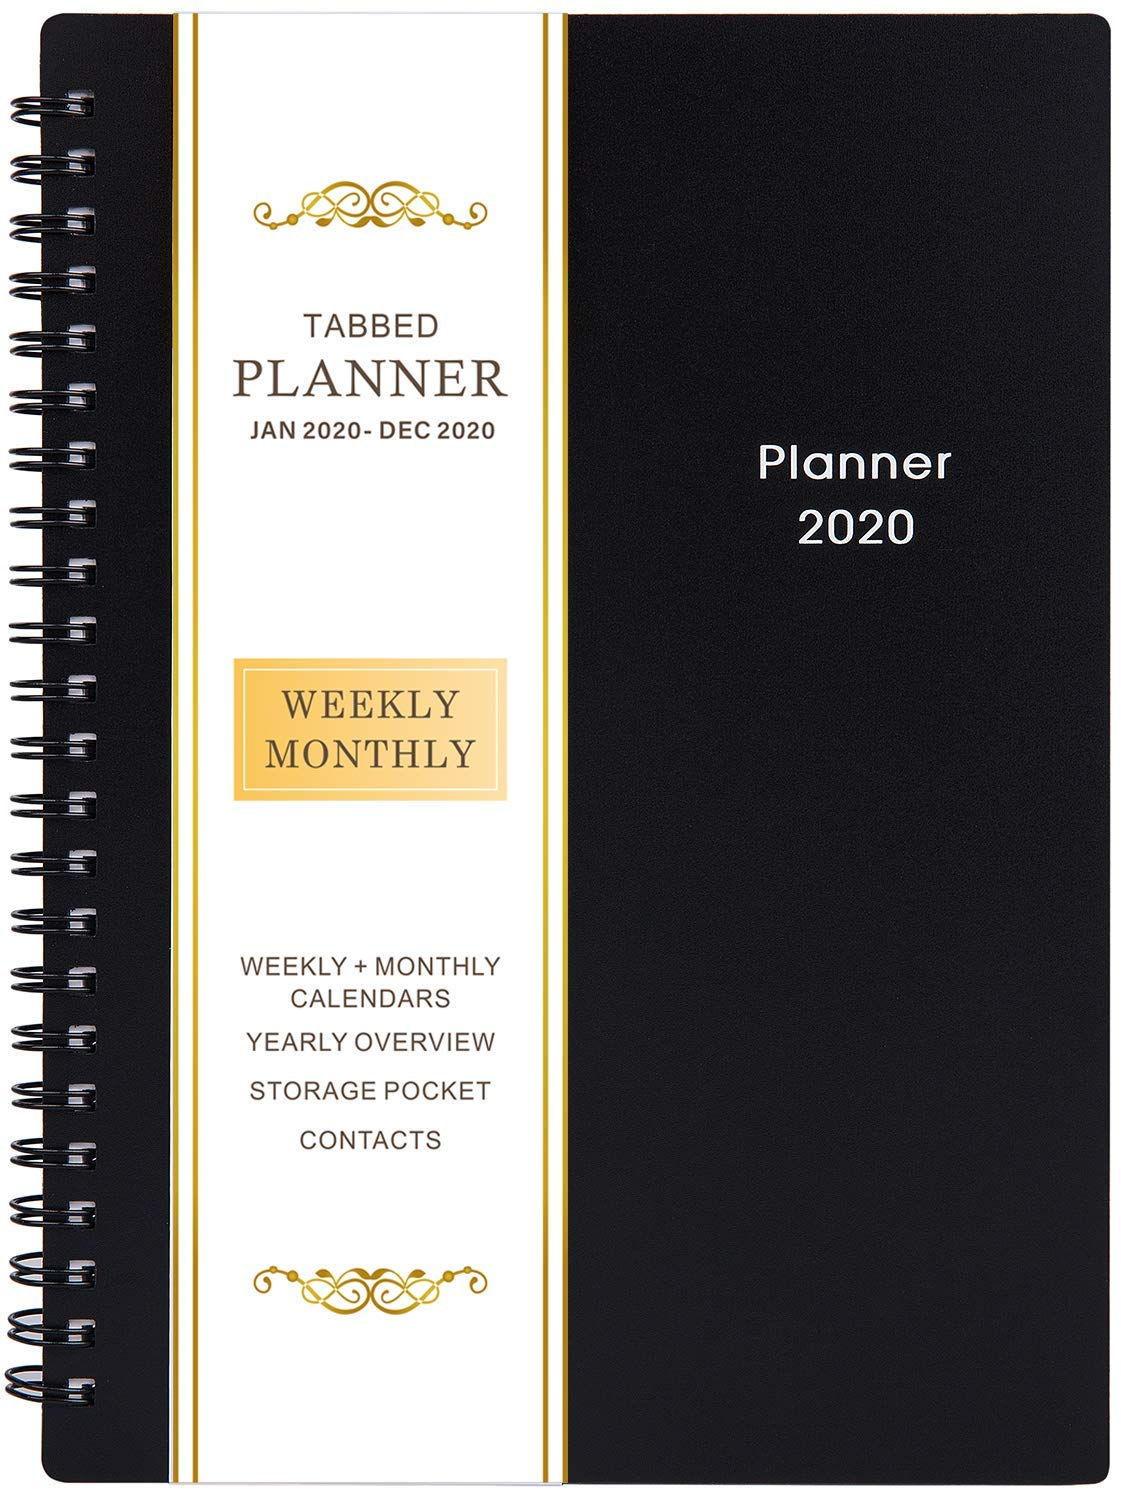 """2020 Planner - Weekly & Monthly Planner, Flexible Cover, 12 Monthly Tabs, 21 Notes Pages, 6.25"""" x 8.3"""", Twin-Wire Binding with Two-Sided Inner Pocket"""